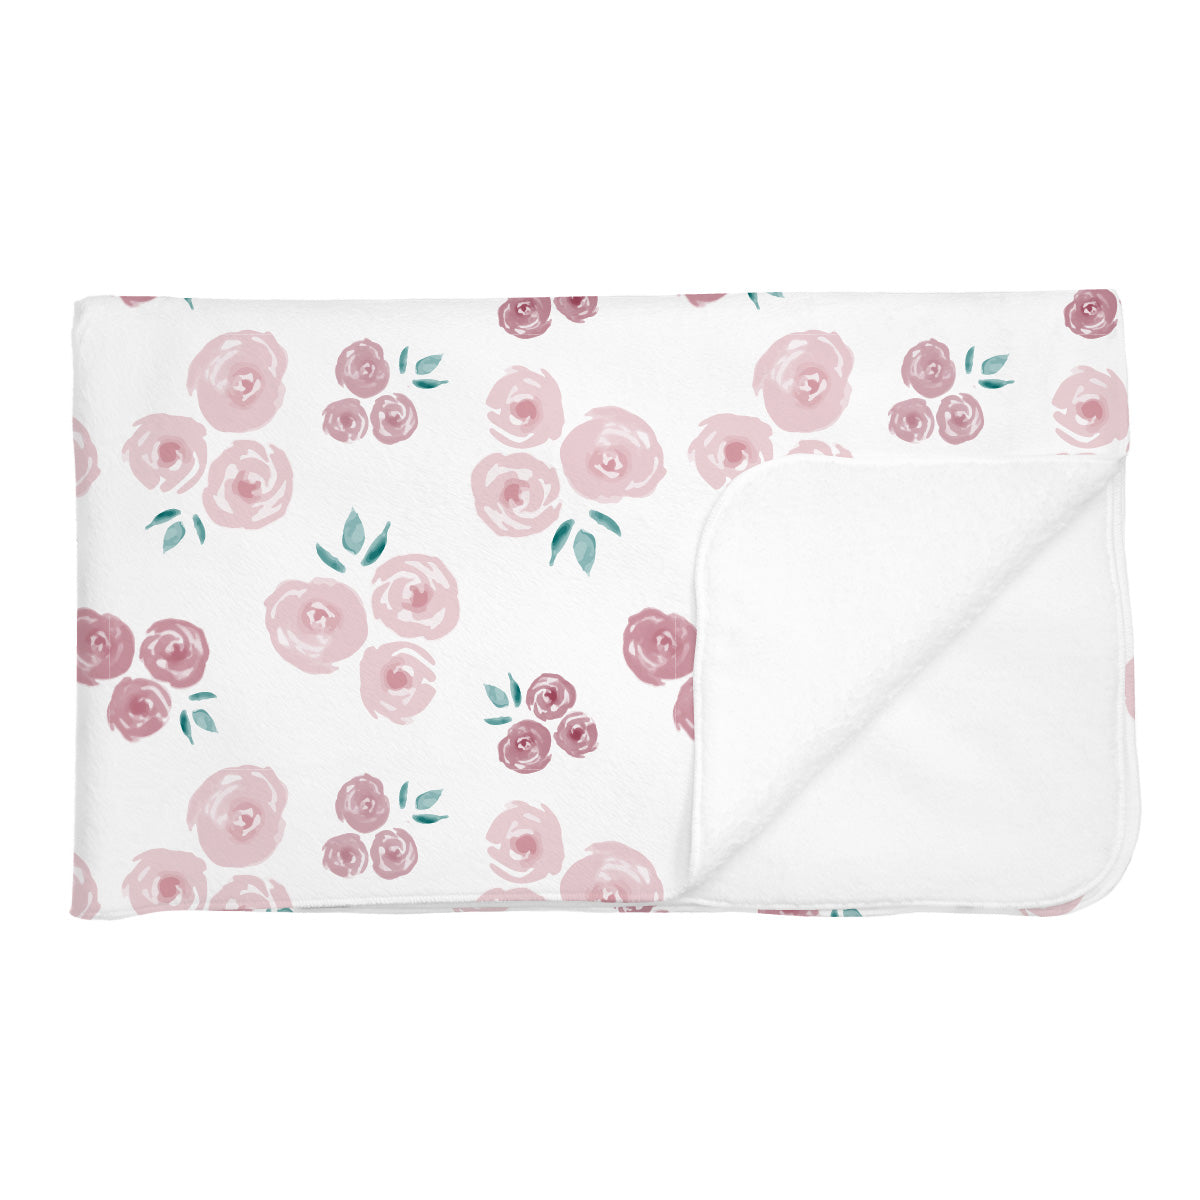 Cassidy's English Rose | Adult Size Blanket